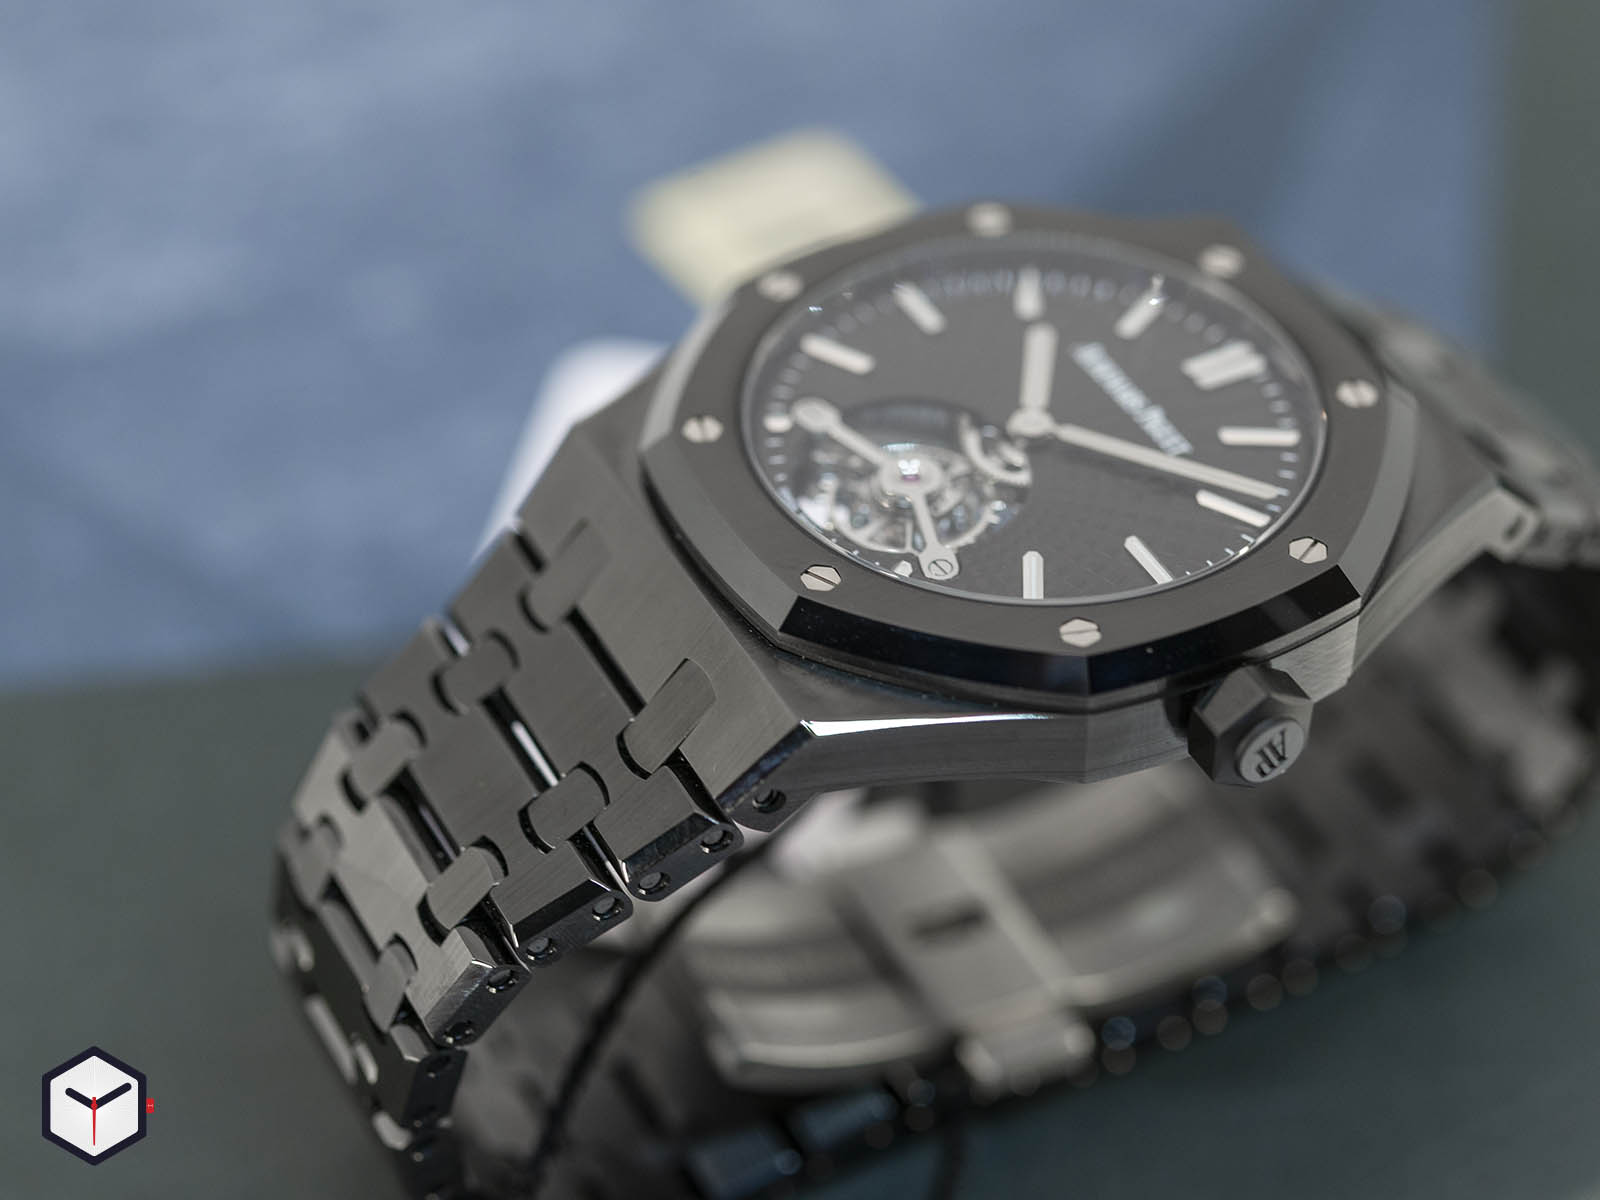 audemars-piguet-royal-oak-tourbillon-extra-thin-black-ceramic-4.jpg